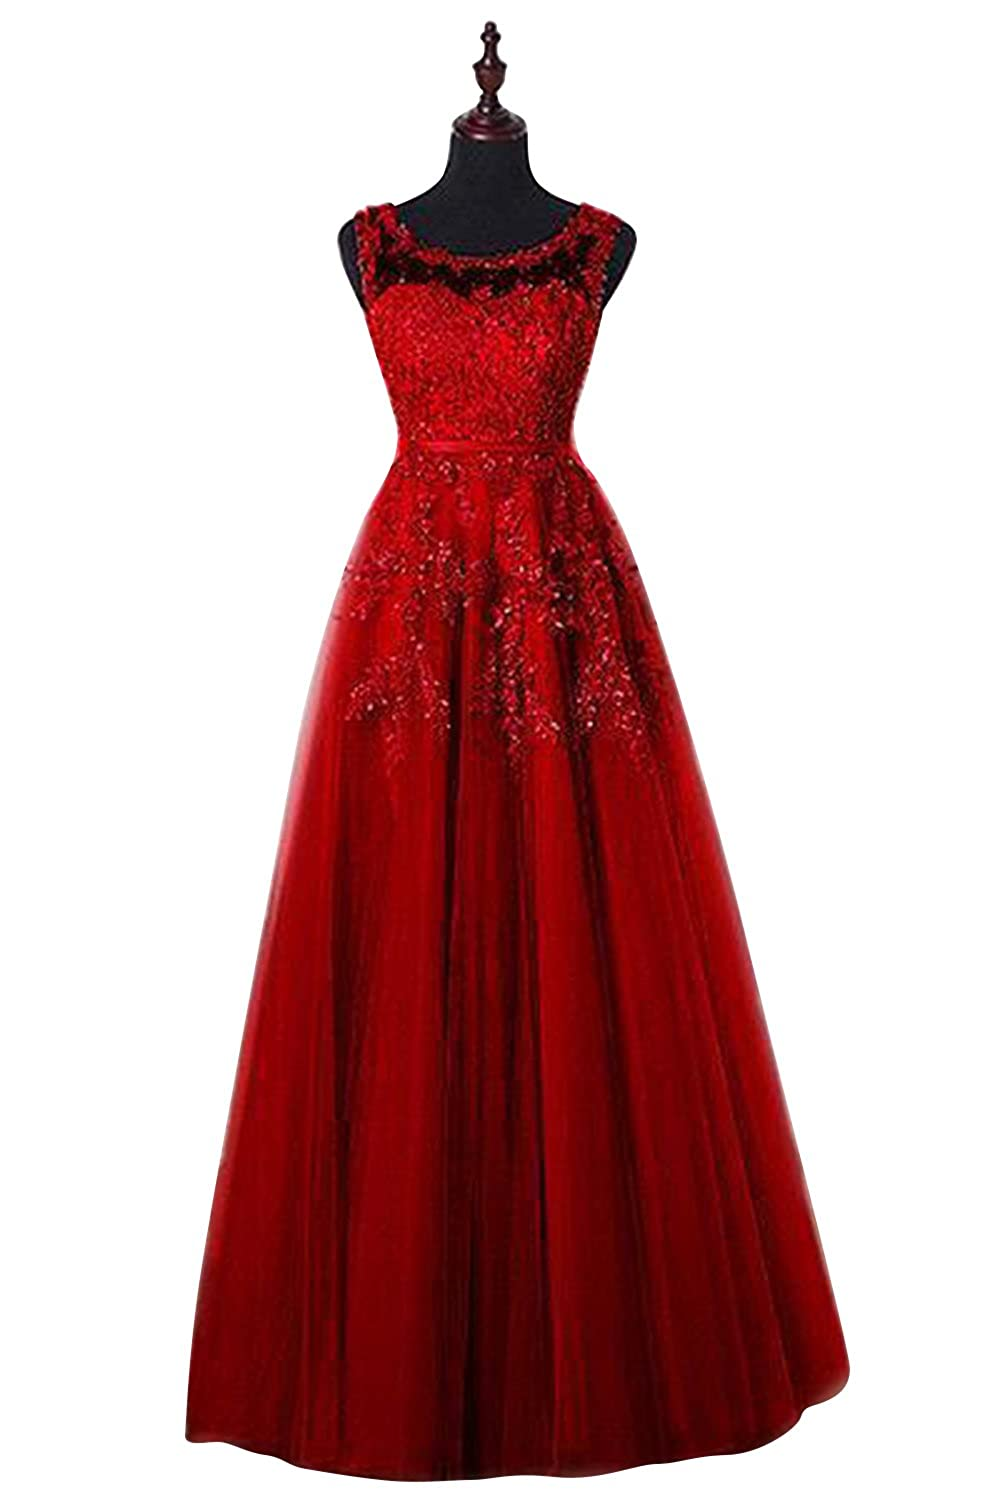 Babyonlinedress Women's Tulle Appliques Short Evening Cocktail Gown Homecoming Dress